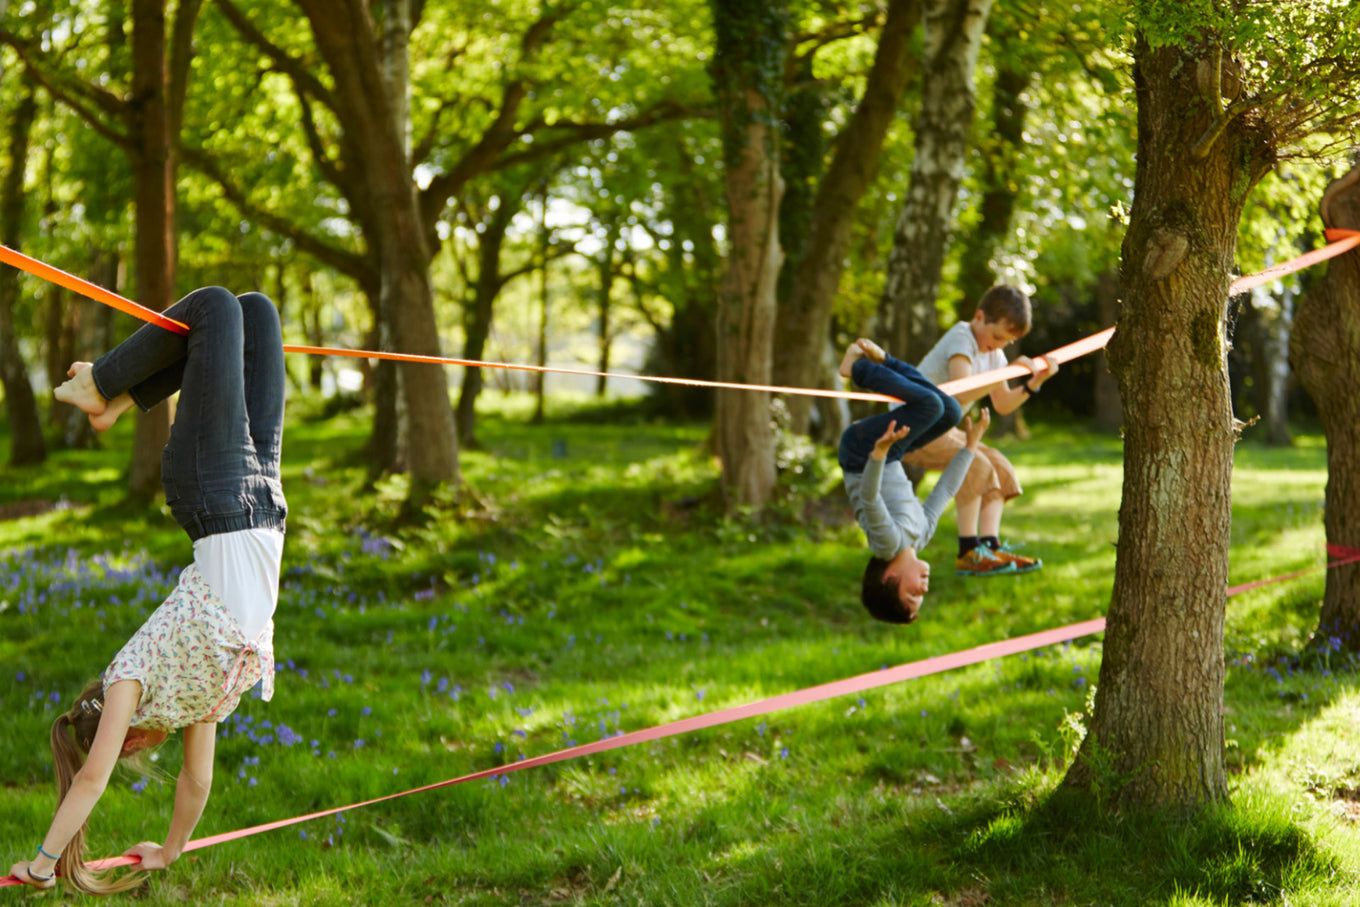 Slackline by Kids at Work